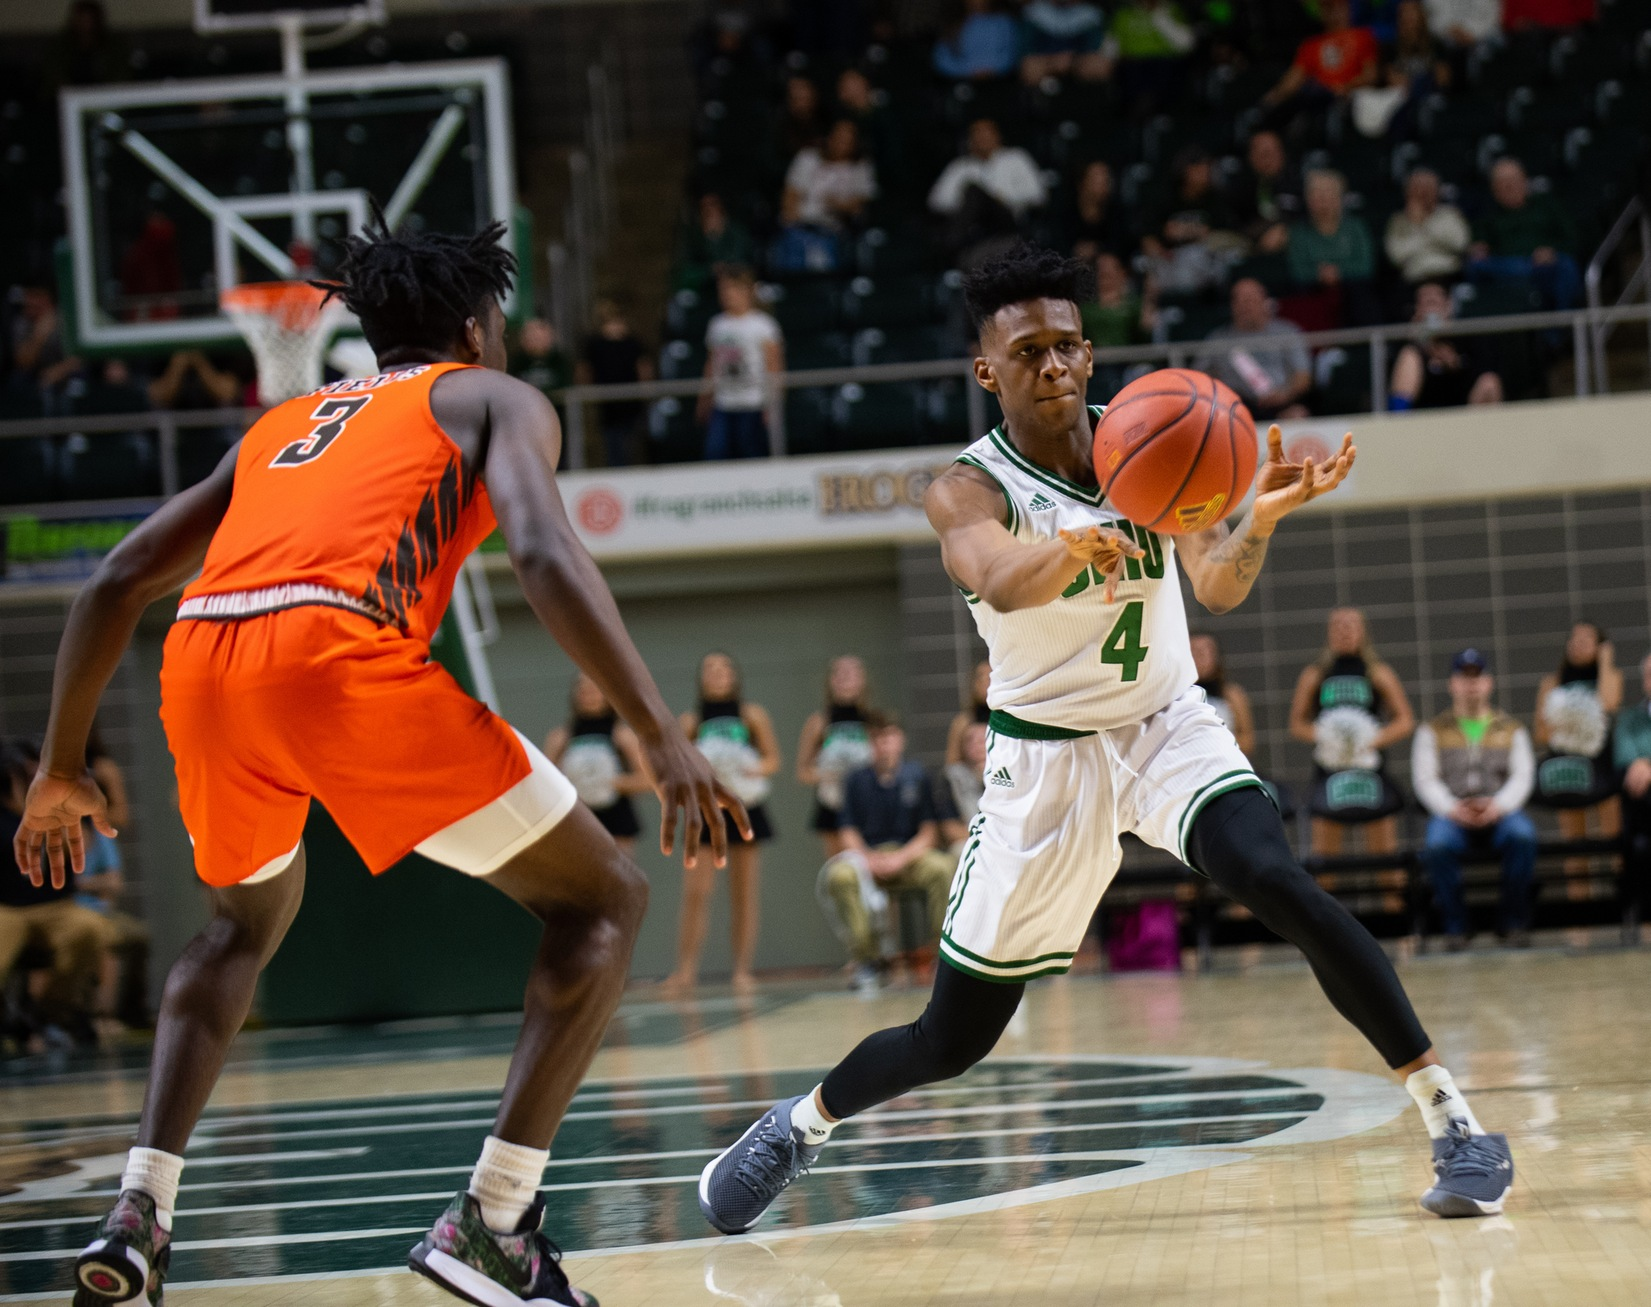 Ohio Men's Basketball Snaps Skid, Downs Bowling Green in Overtime